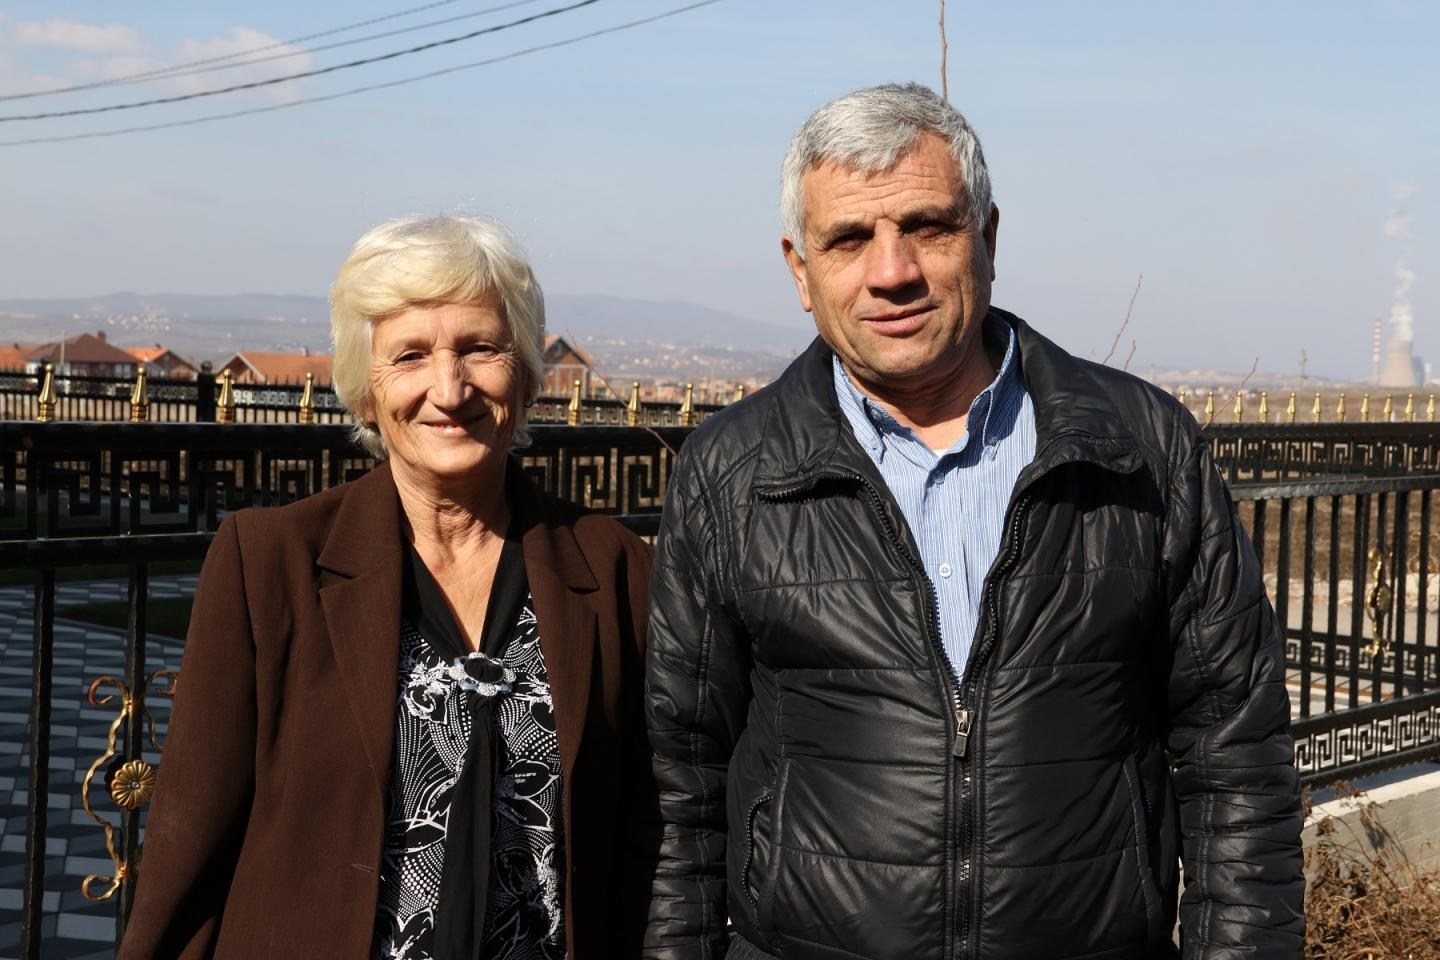 Shaha and Fari standing in front of their house in Fushe-Kosovo.